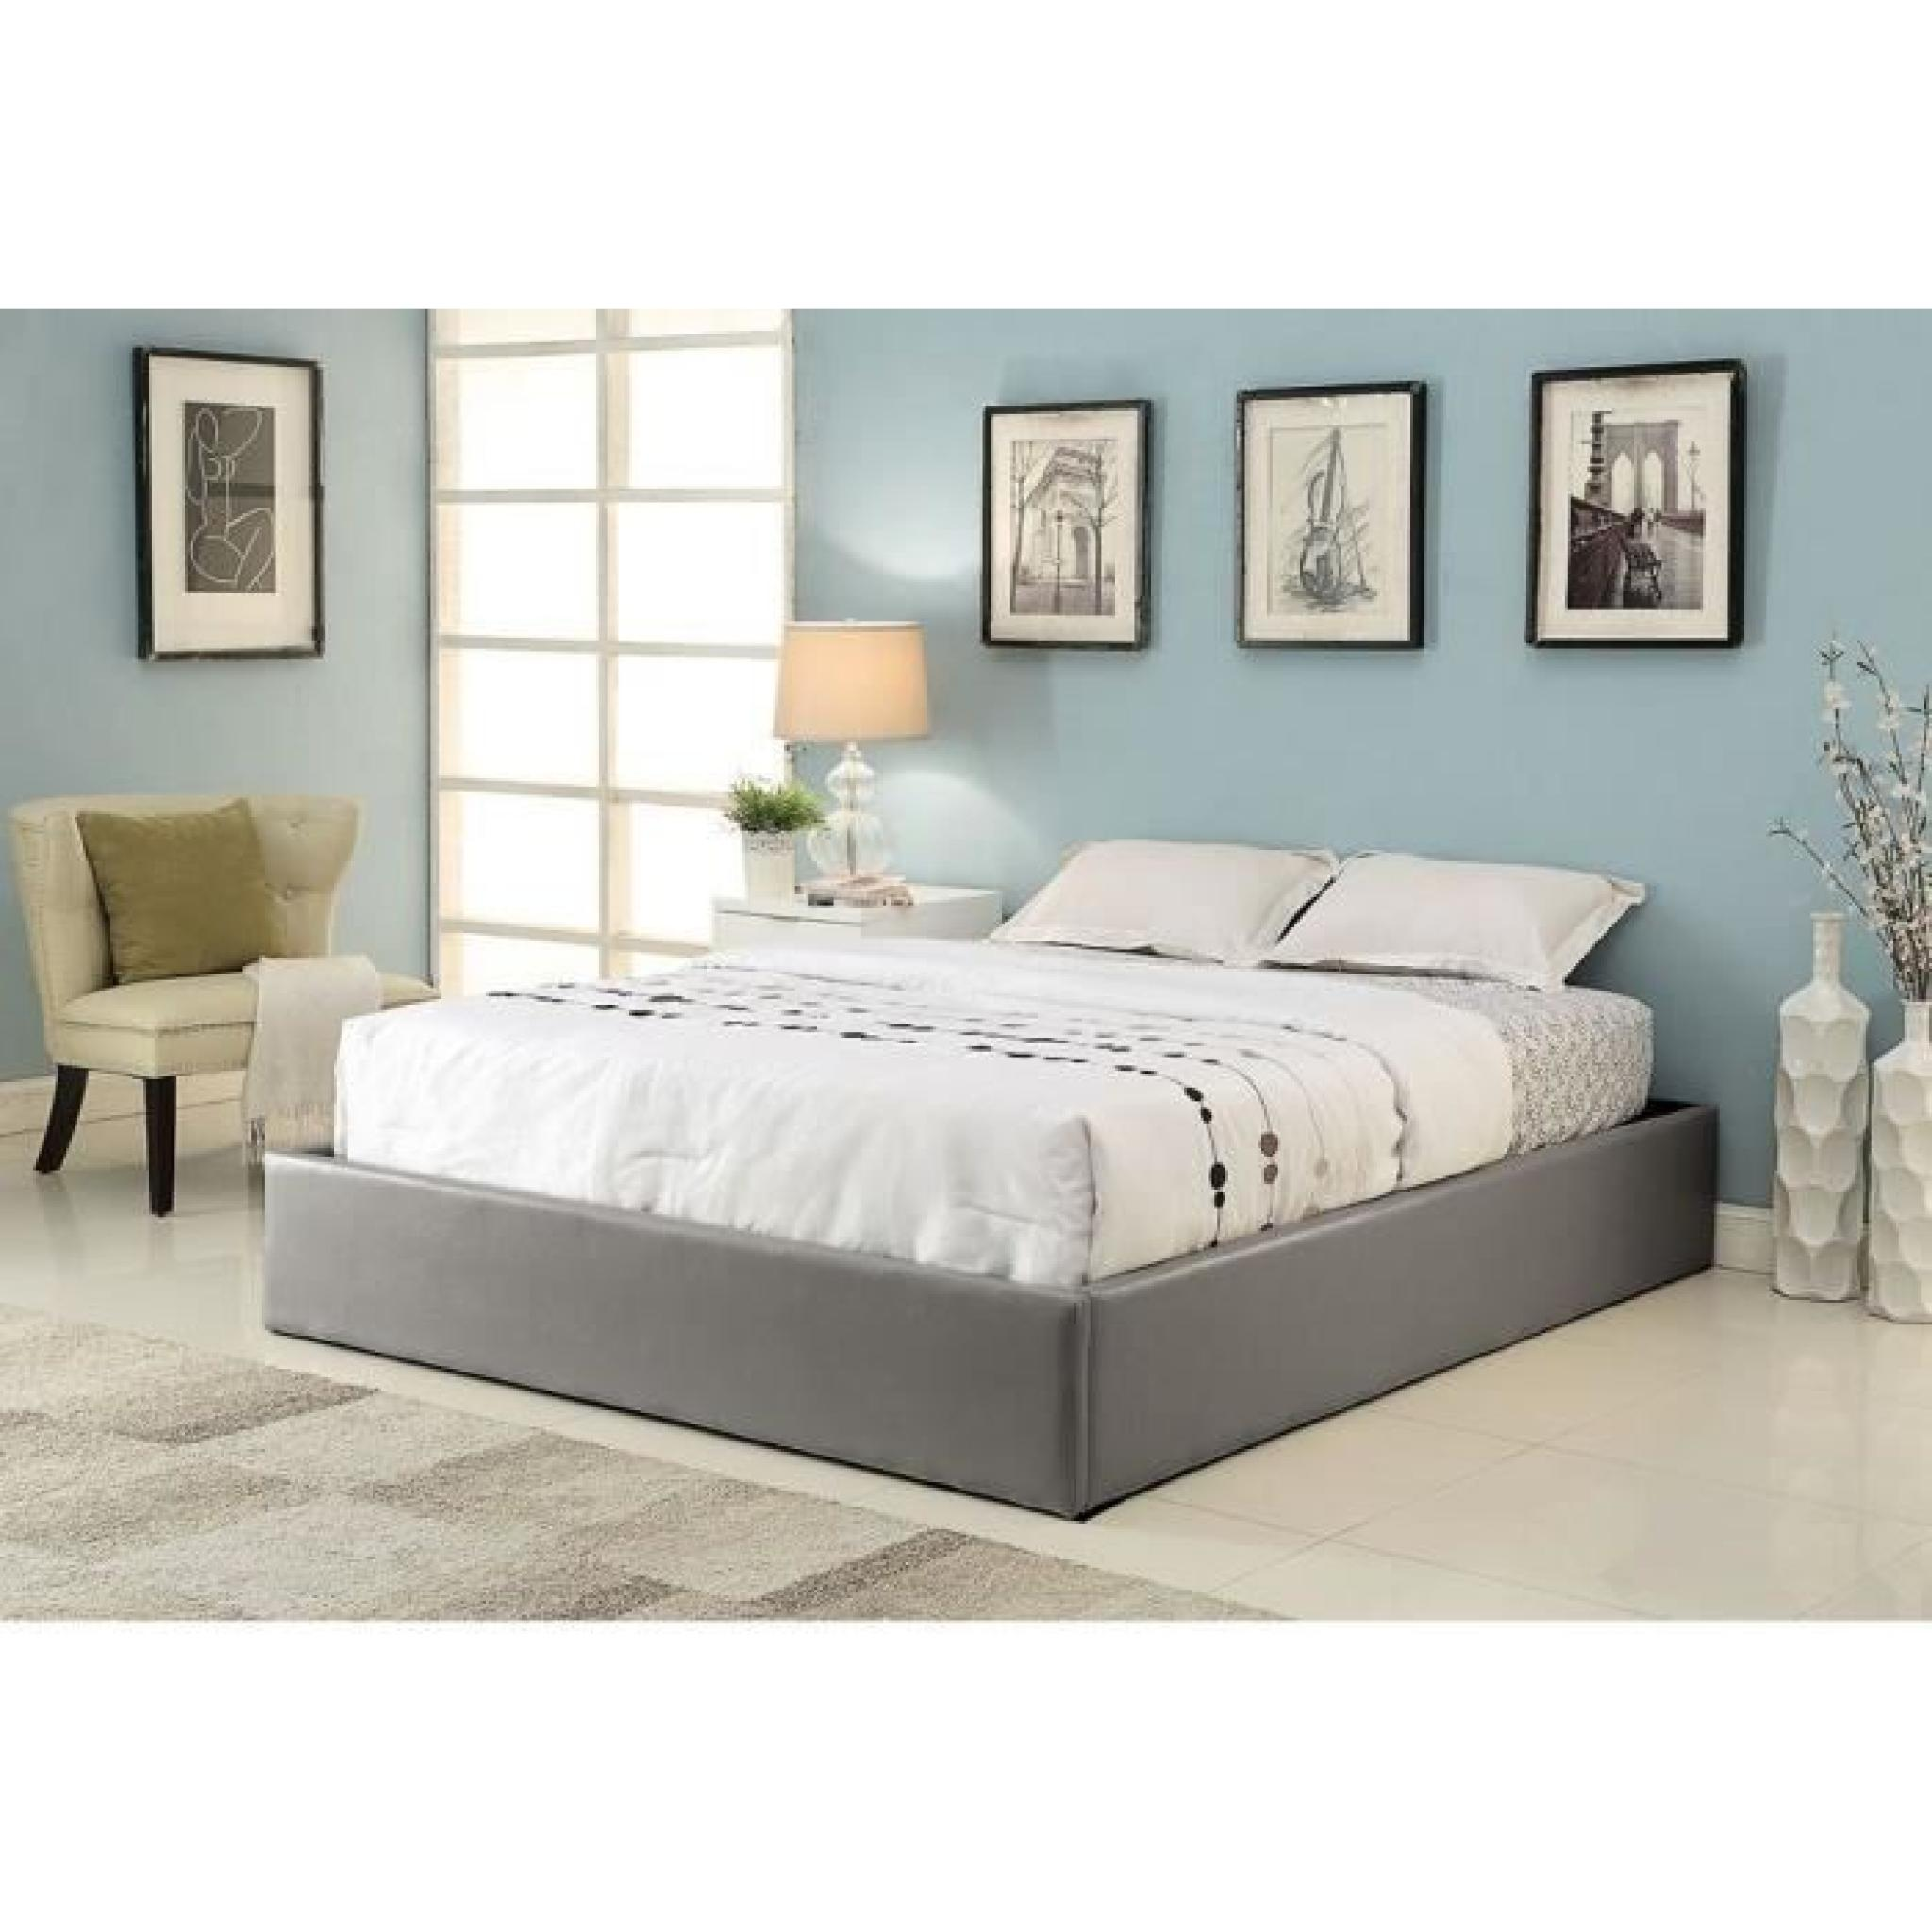 Lit Coffre Adulte 140x190 Majesty Lit Coffre Adulte 140x190 43 Sommier Gris Achat